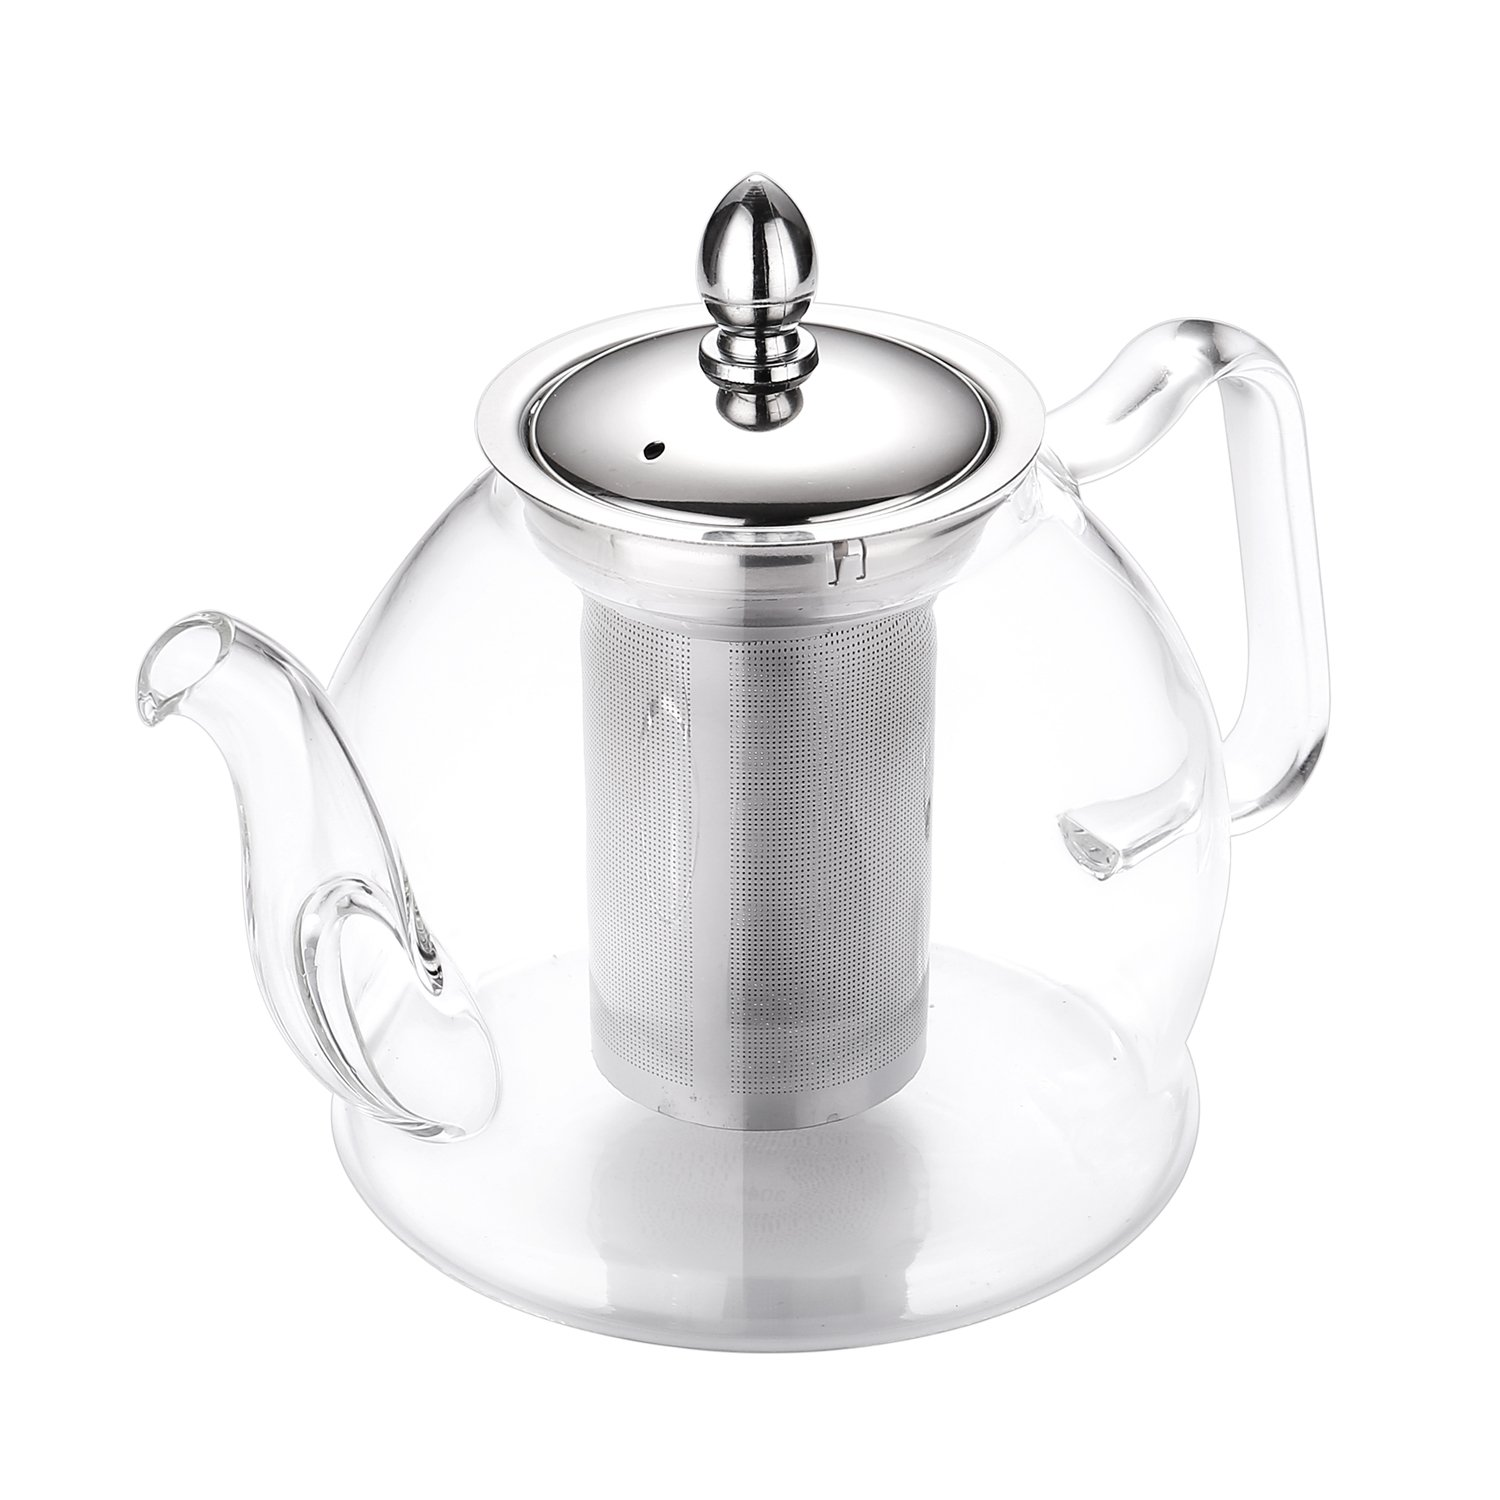 Hiware Teapot Set, 35 Oz Glass Teapot with Removable Infuser and Cups, Stovetop Safe Tea Kettle, Blooming and Loose Leaf Tea Maker Set by Hiware (Image #2)